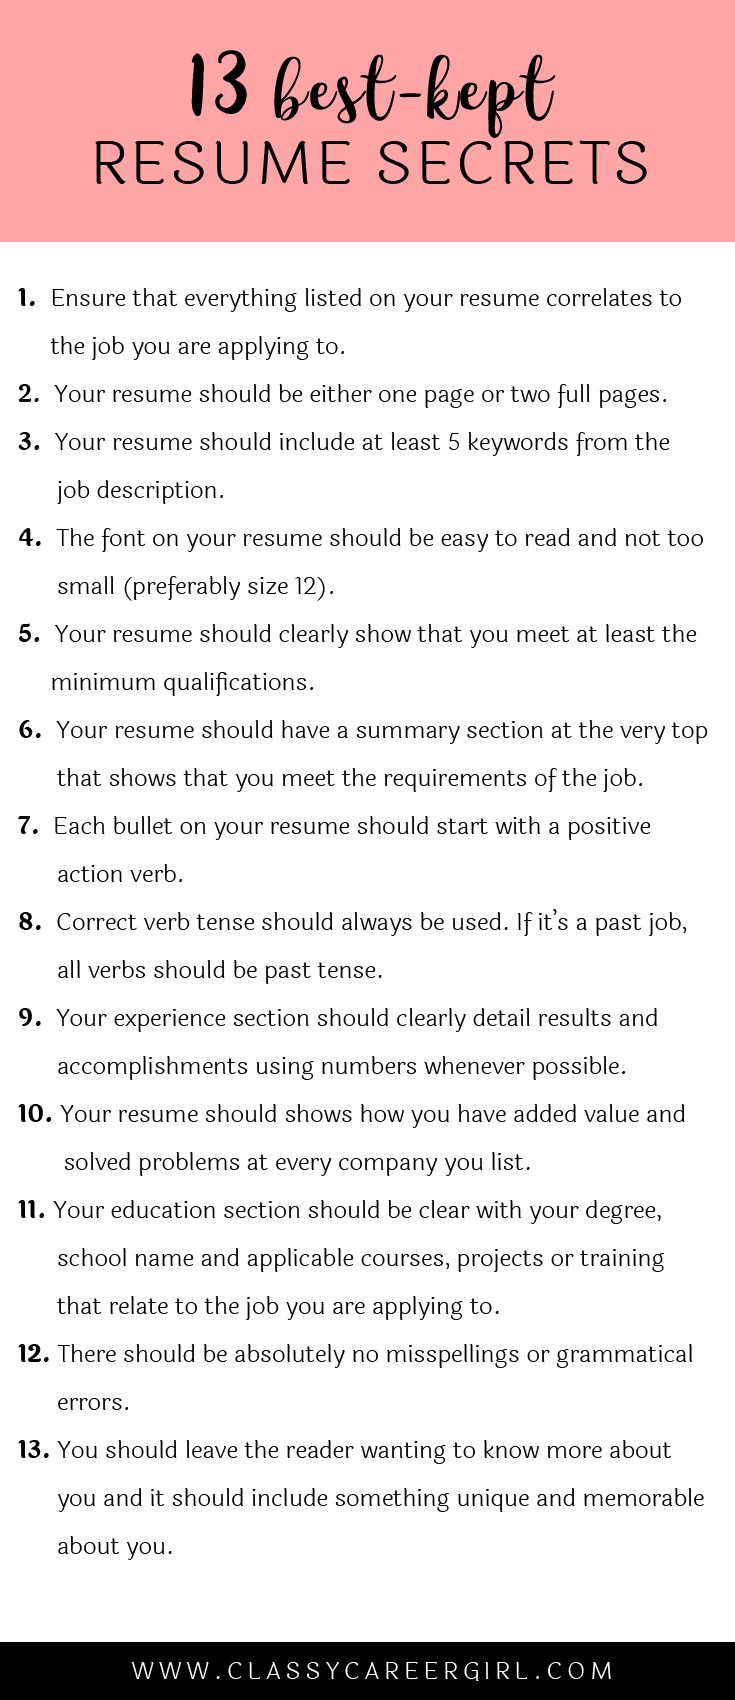 Opposenewapstandardsus  Gorgeous  Ideas About Resume On Pinterest  Cv Format Resume  With Foxy Some Hiring Managers Will Toss Your Resume Out If You Dont Know These  With Breathtaking Resume Additional Skills Also Resume Services Online In Addition Resume Description And Nursing Skills For Resume As Well As Dance Resume Template Additionally References For A Resume From Pinterestcom With Opposenewapstandardsus  Foxy  Ideas About Resume On Pinterest  Cv Format Resume  With Breathtaking Some Hiring Managers Will Toss Your Resume Out If You Dont Know These  And Gorgeous Resume Additional Skills Also Resume Services Online In Addition Resume Description From Pinterestcom